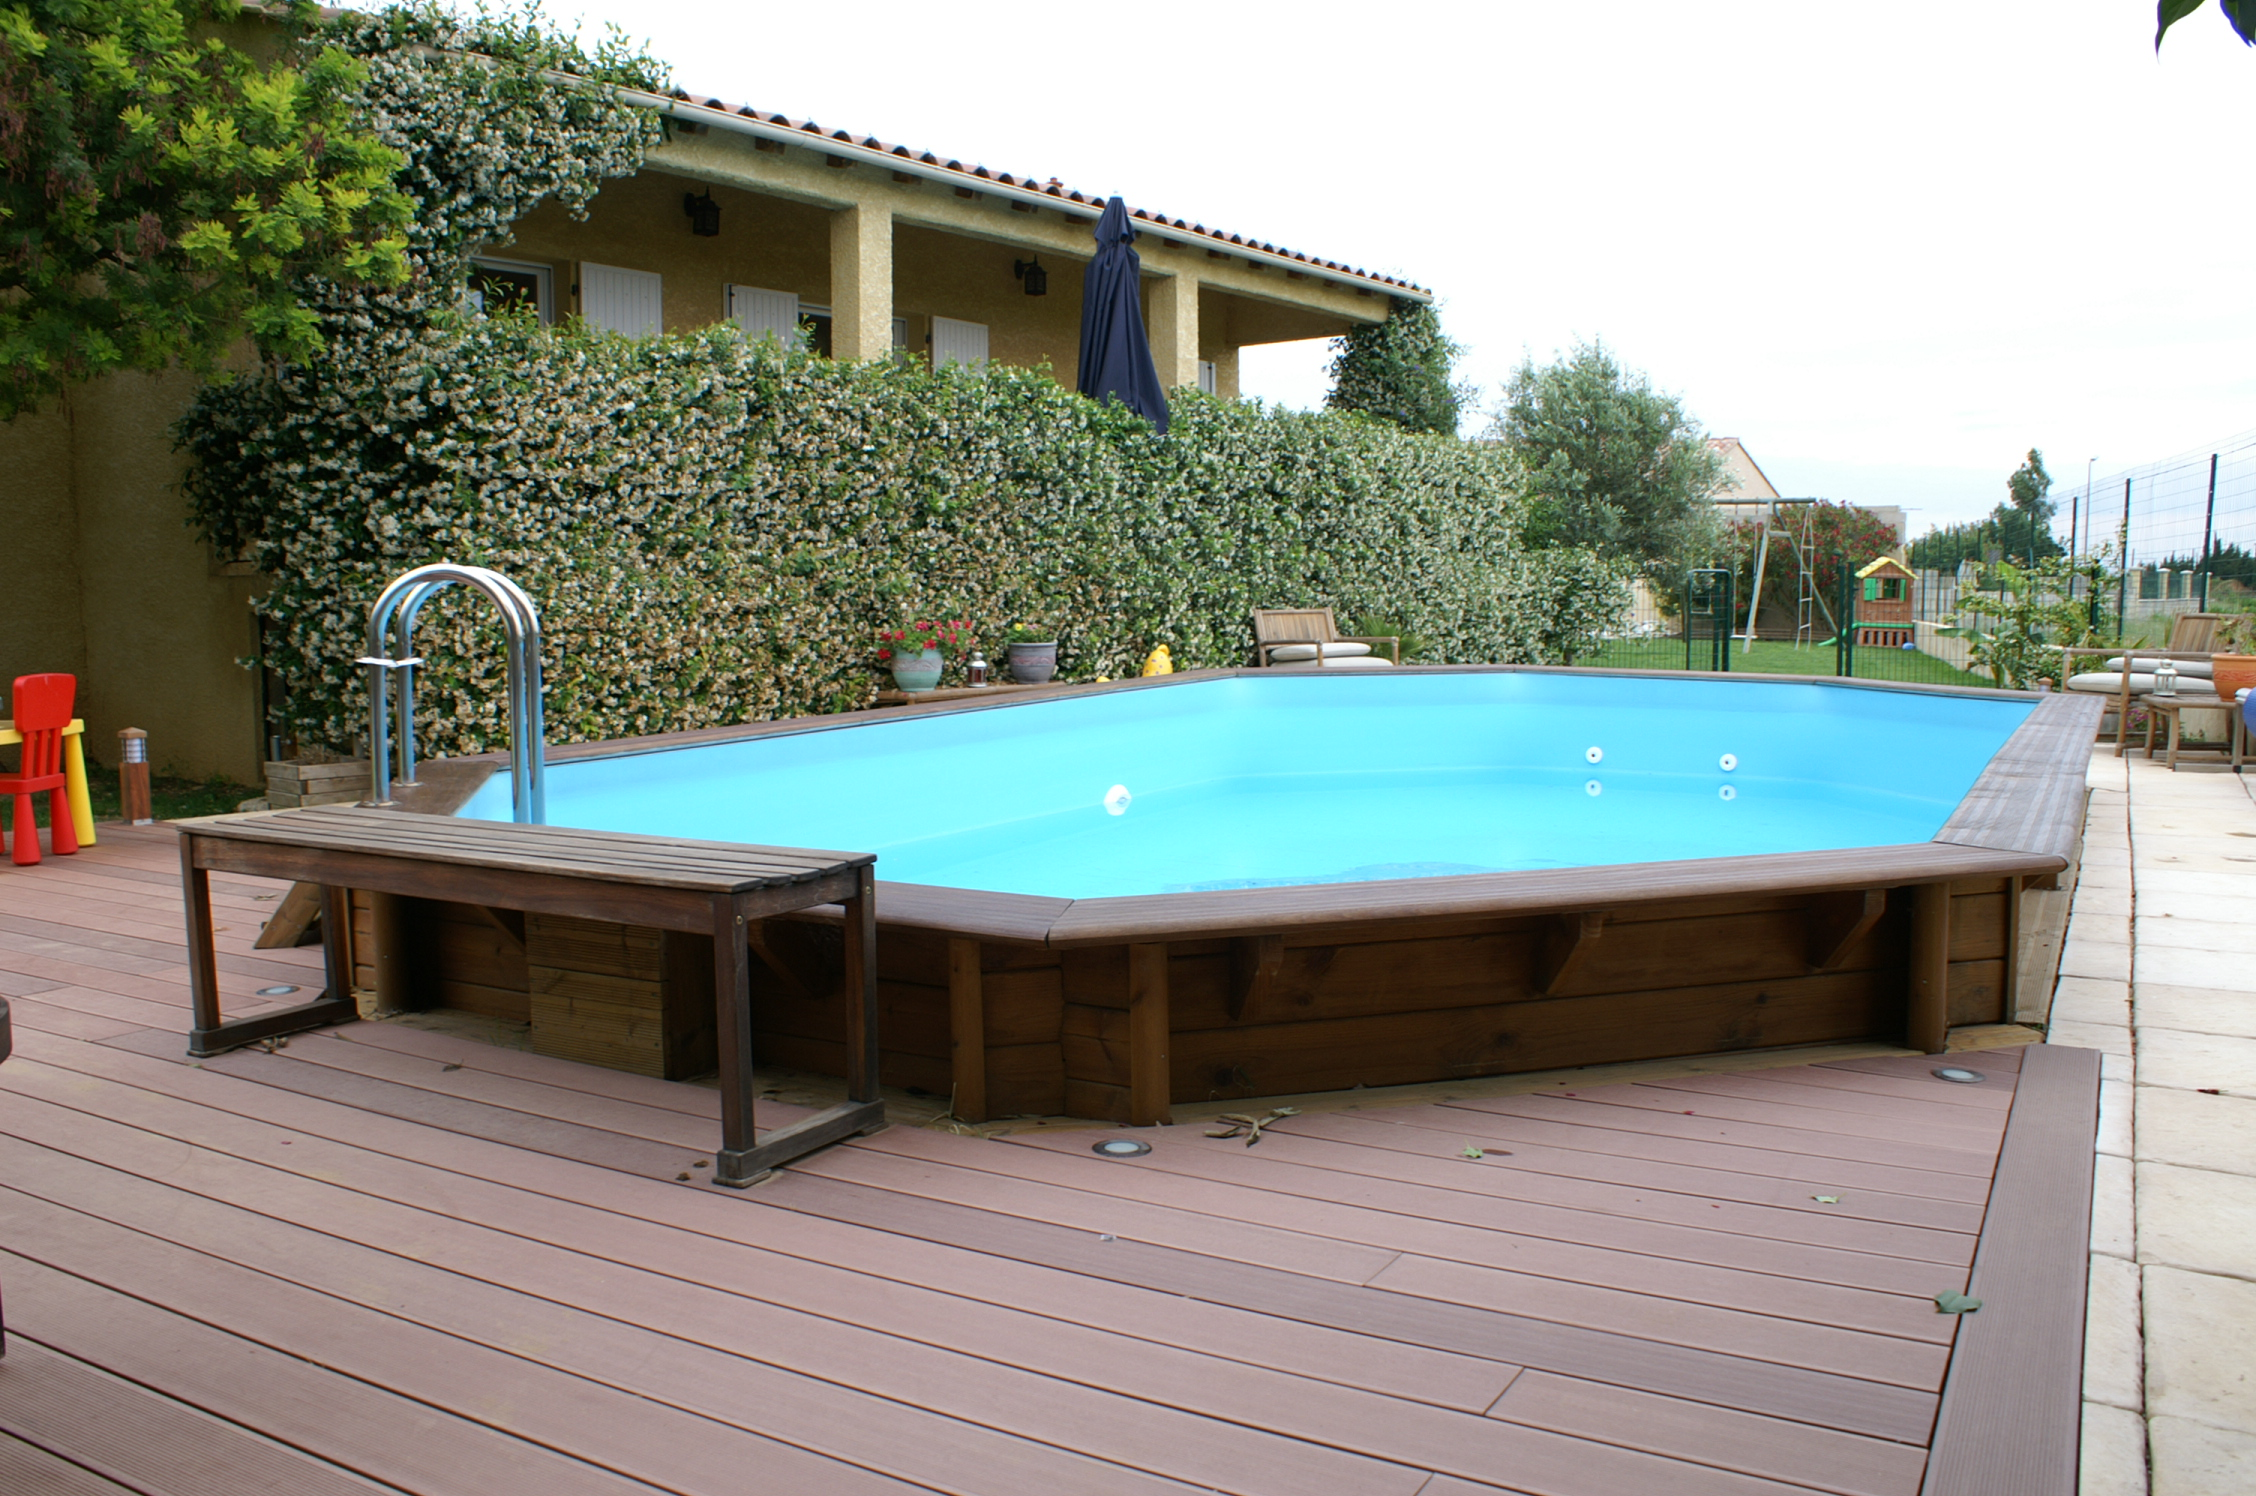 Construction piscines nimes gepad piscines et spa 30000 for Taxe piscine hors sol